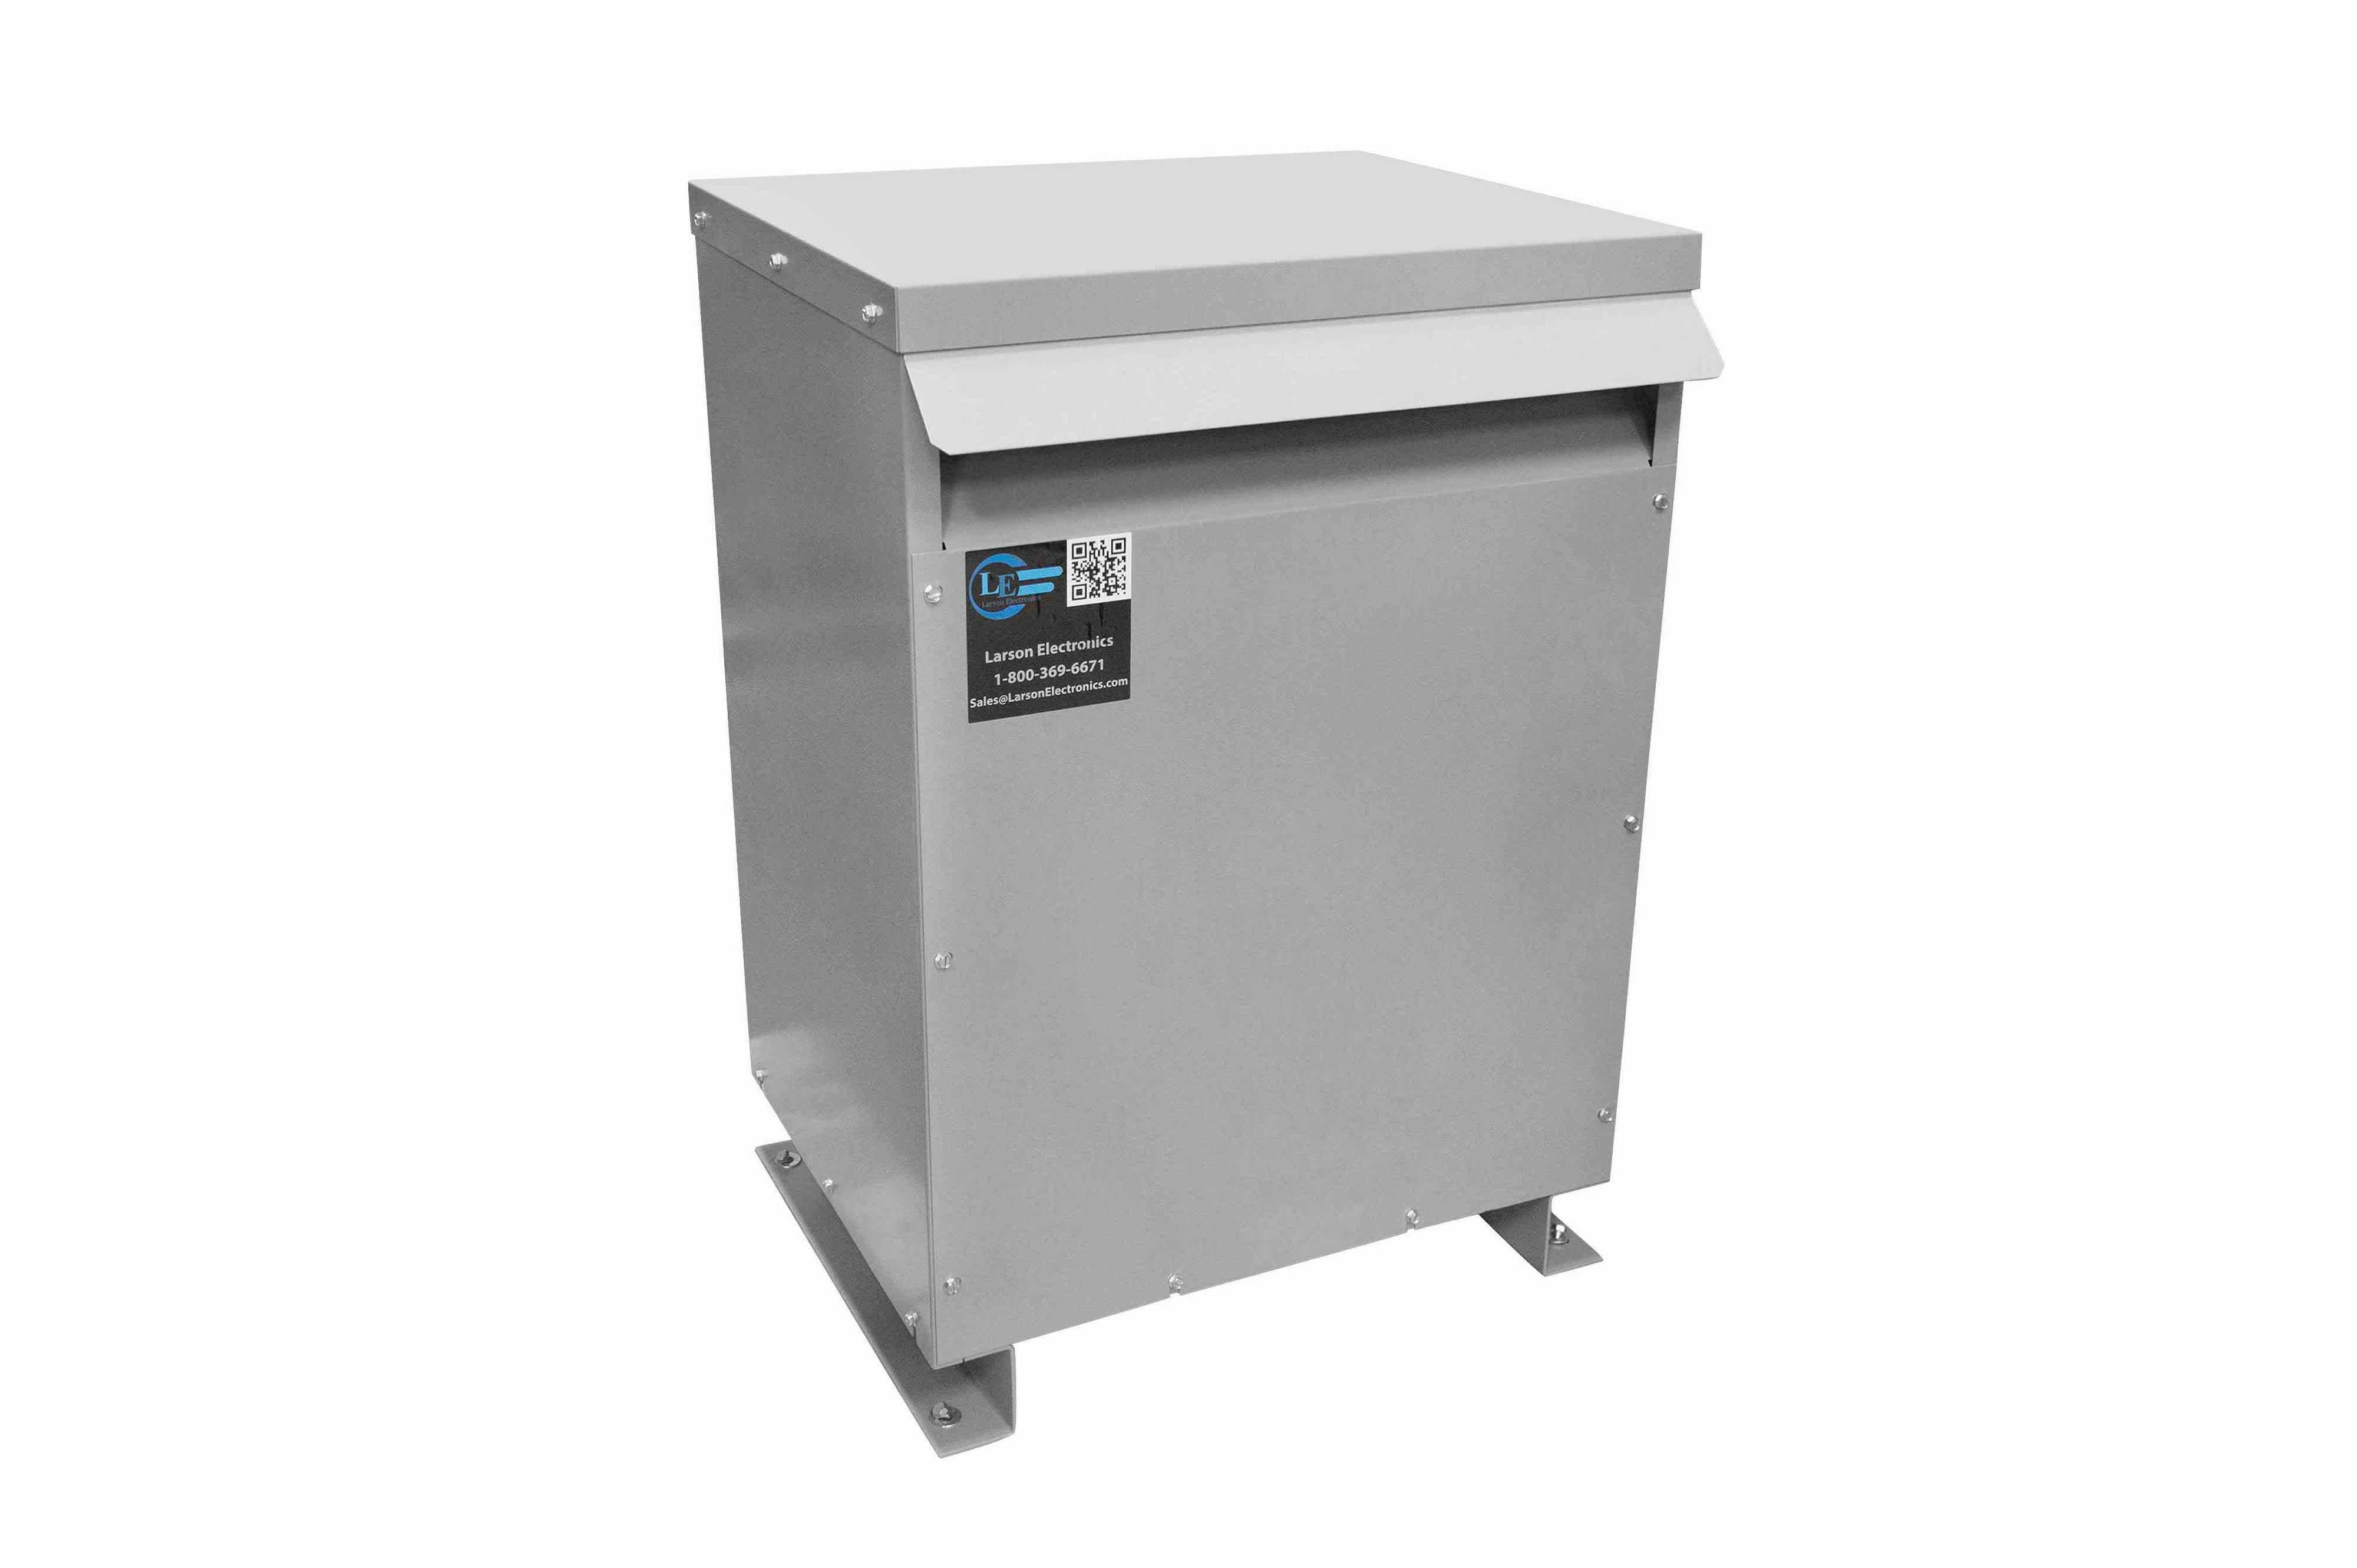 15 kVA 3PH Isolation Transformer, 415V Wye Primary, 208Y/120 Wye-N Secondary, N3R, Ventilated, 60 Hz